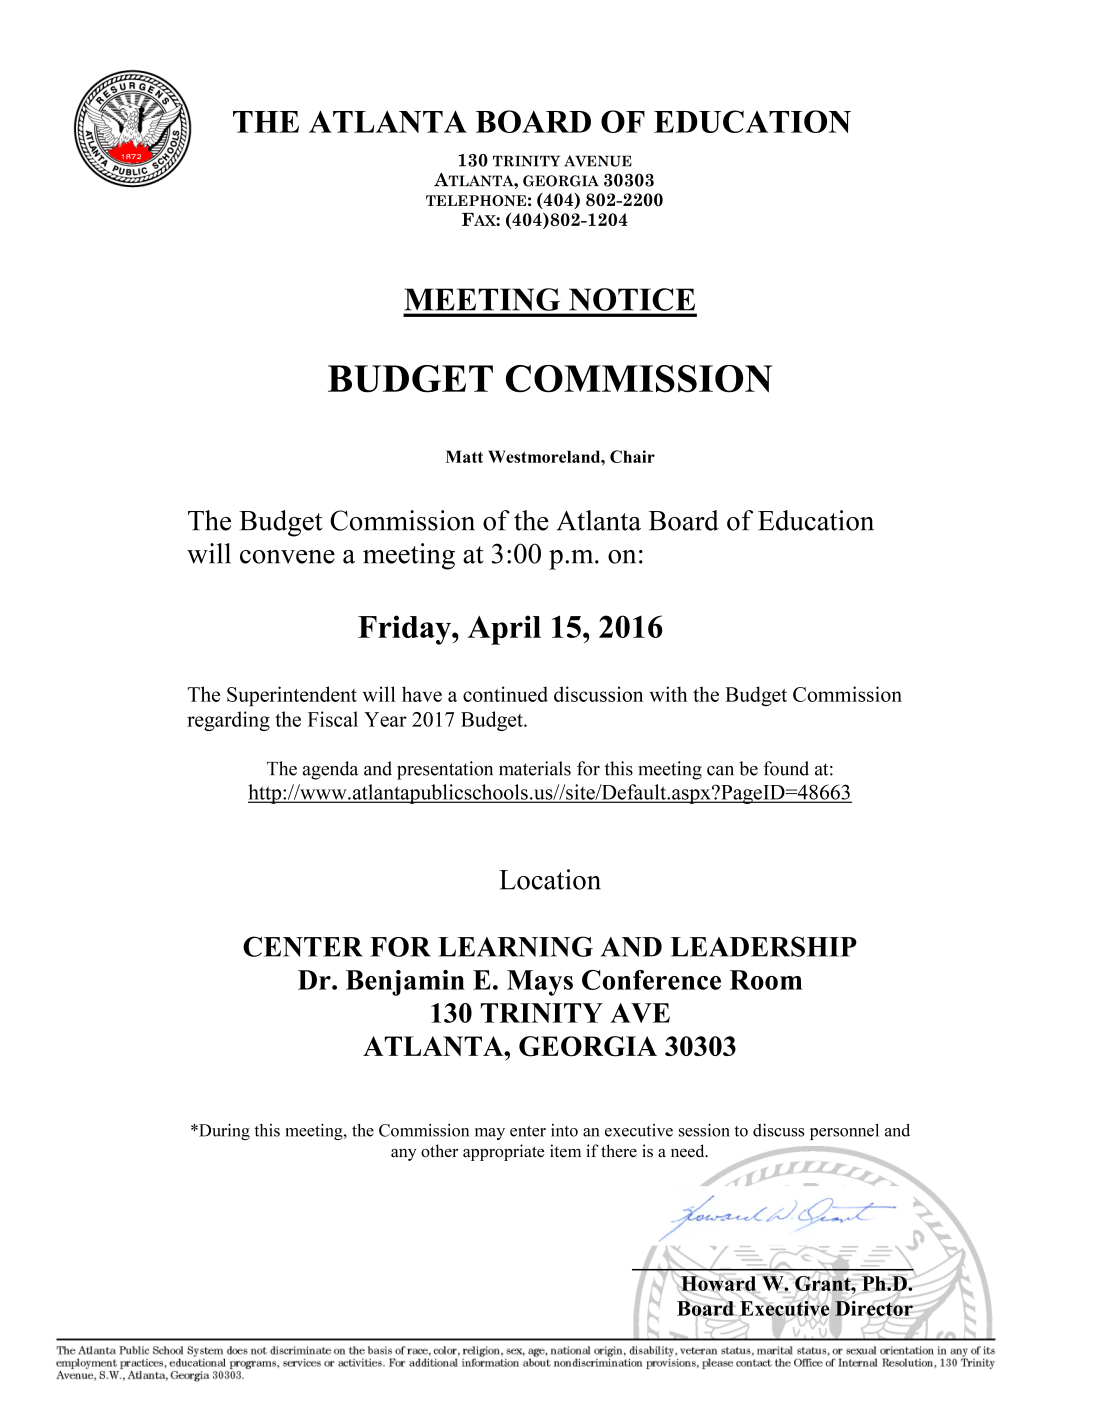 Budget Commission Meeting 04152016